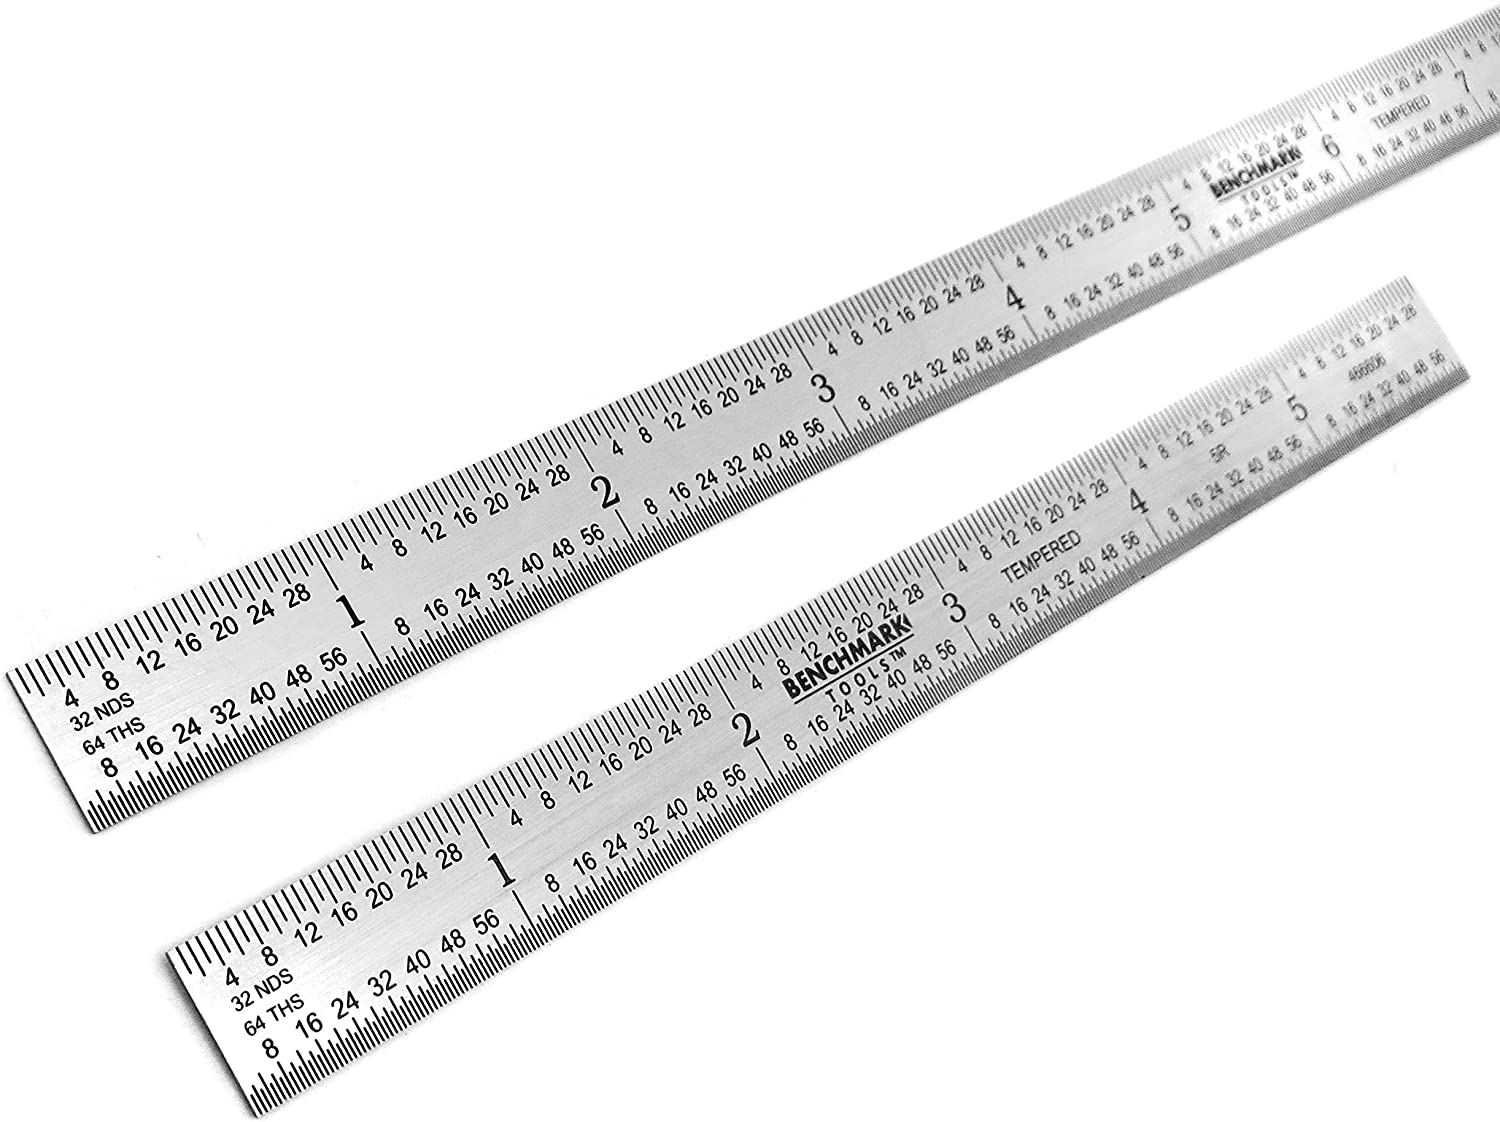 1//32 and 1//64 Markings Stainless Steel Black Chrome Finish Conforms to EEC-1 Accuracy Standards Benchmark Tools 466644//466583 Flexible 5R Machinist Rules 2 Piece Set 6 and 12 Inch 1//10 1 1//100